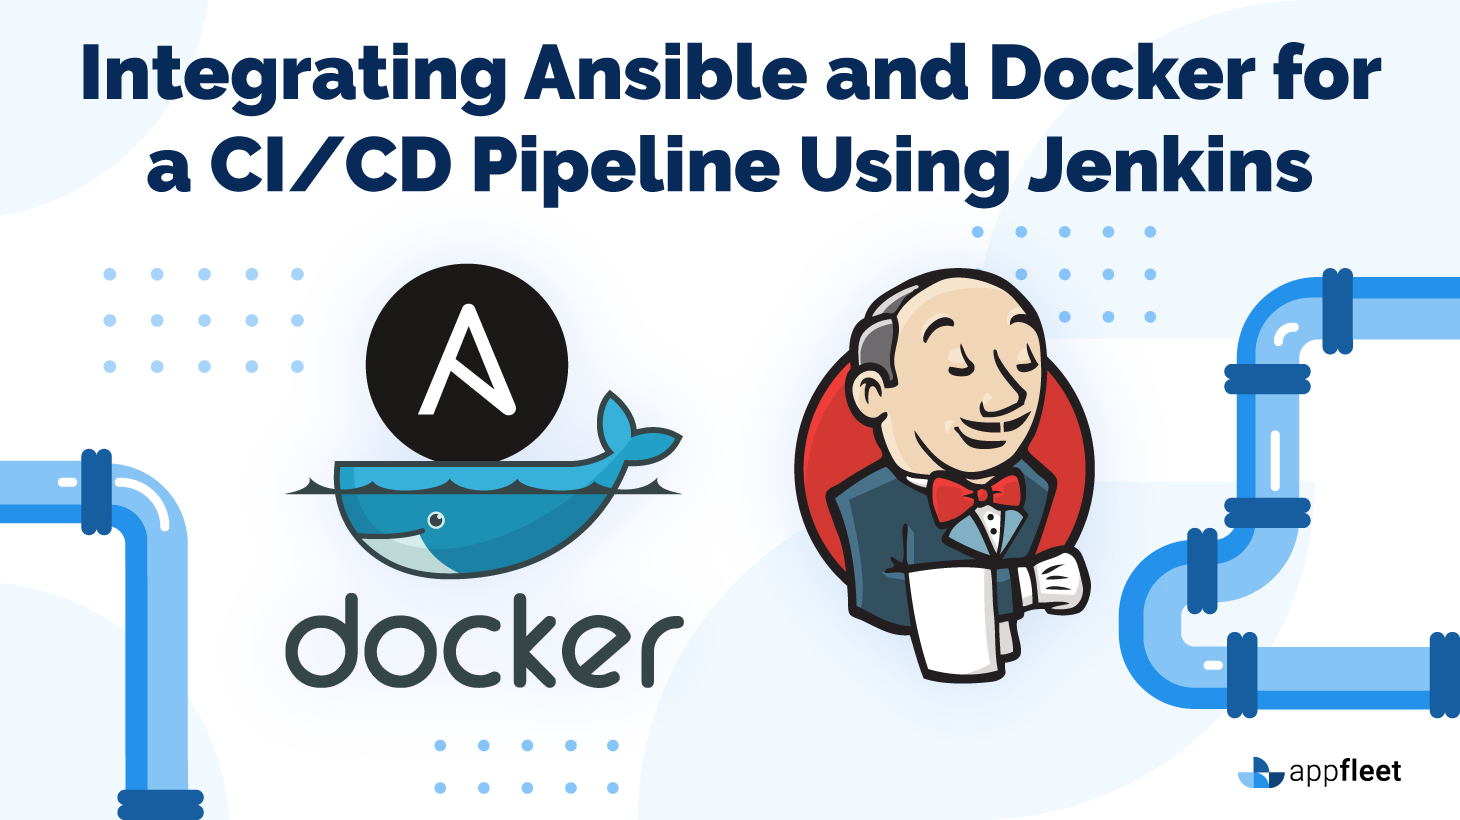 Integrating Ansible and Docker for a CI/CD Pipeline Using Jenkins